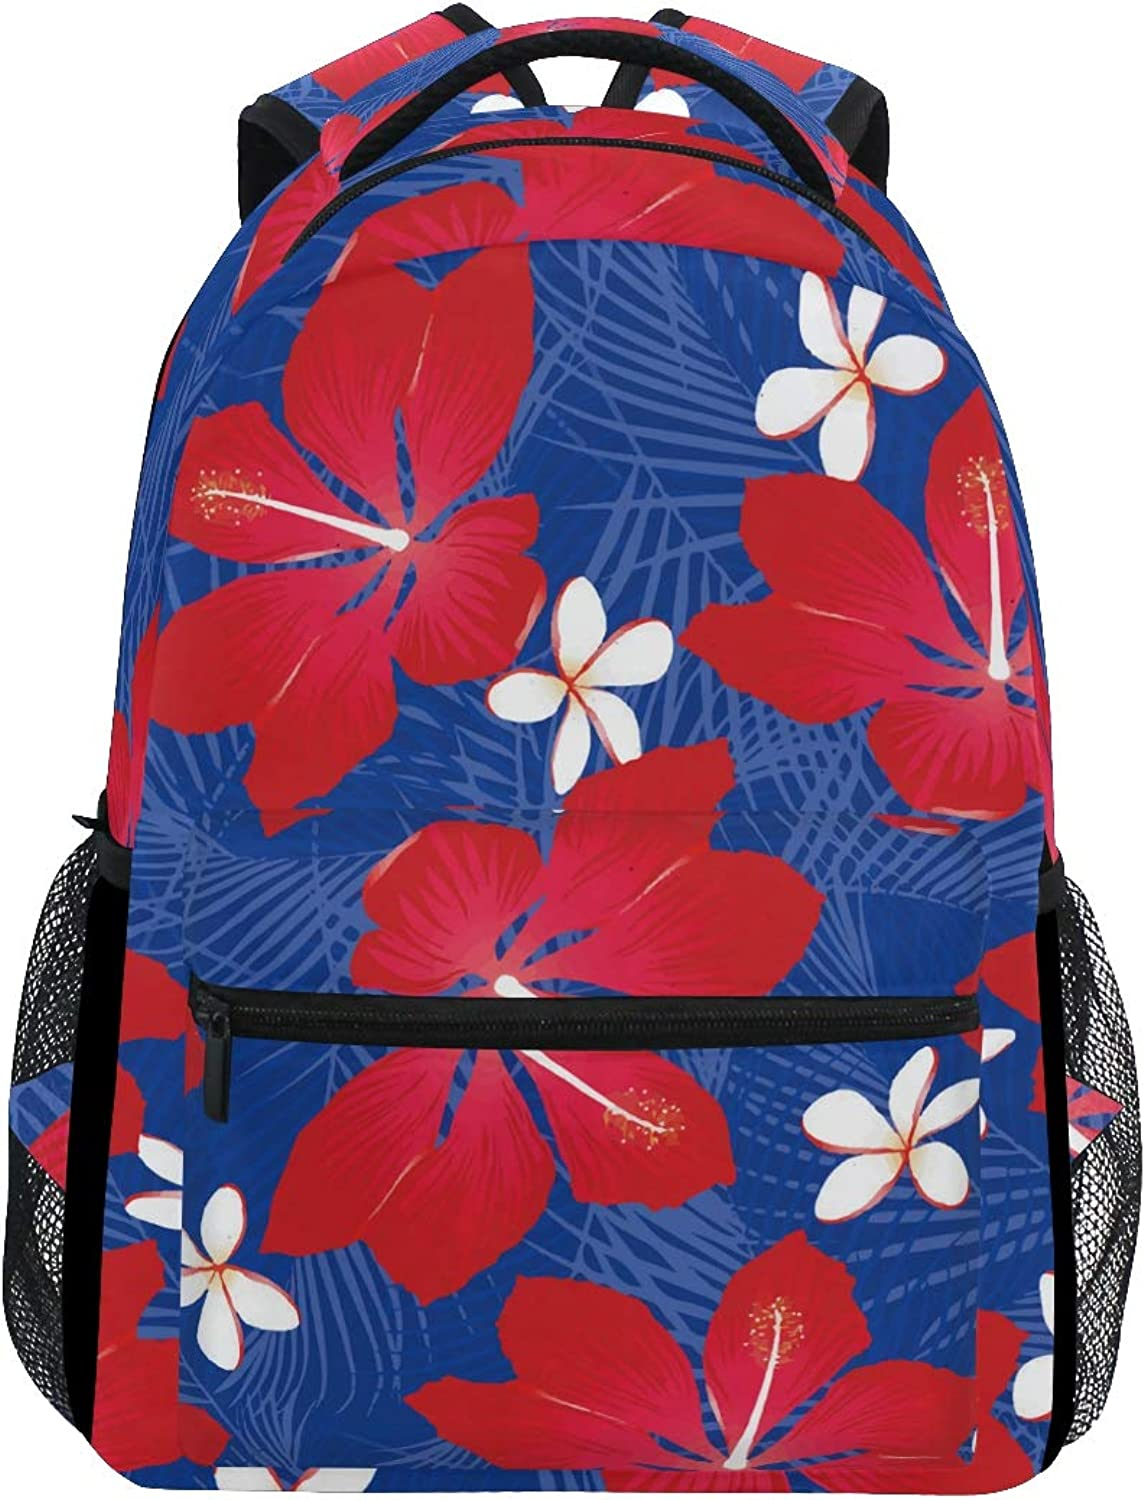 blueee Tropical Palm Leaves with Hibiscus Flowers Trekking Backpack Fashion Backpack Oversized Backpack Men and Women Durable Travel Computer Backpack 17 Inch Notebook Waterproof Large Business Bag